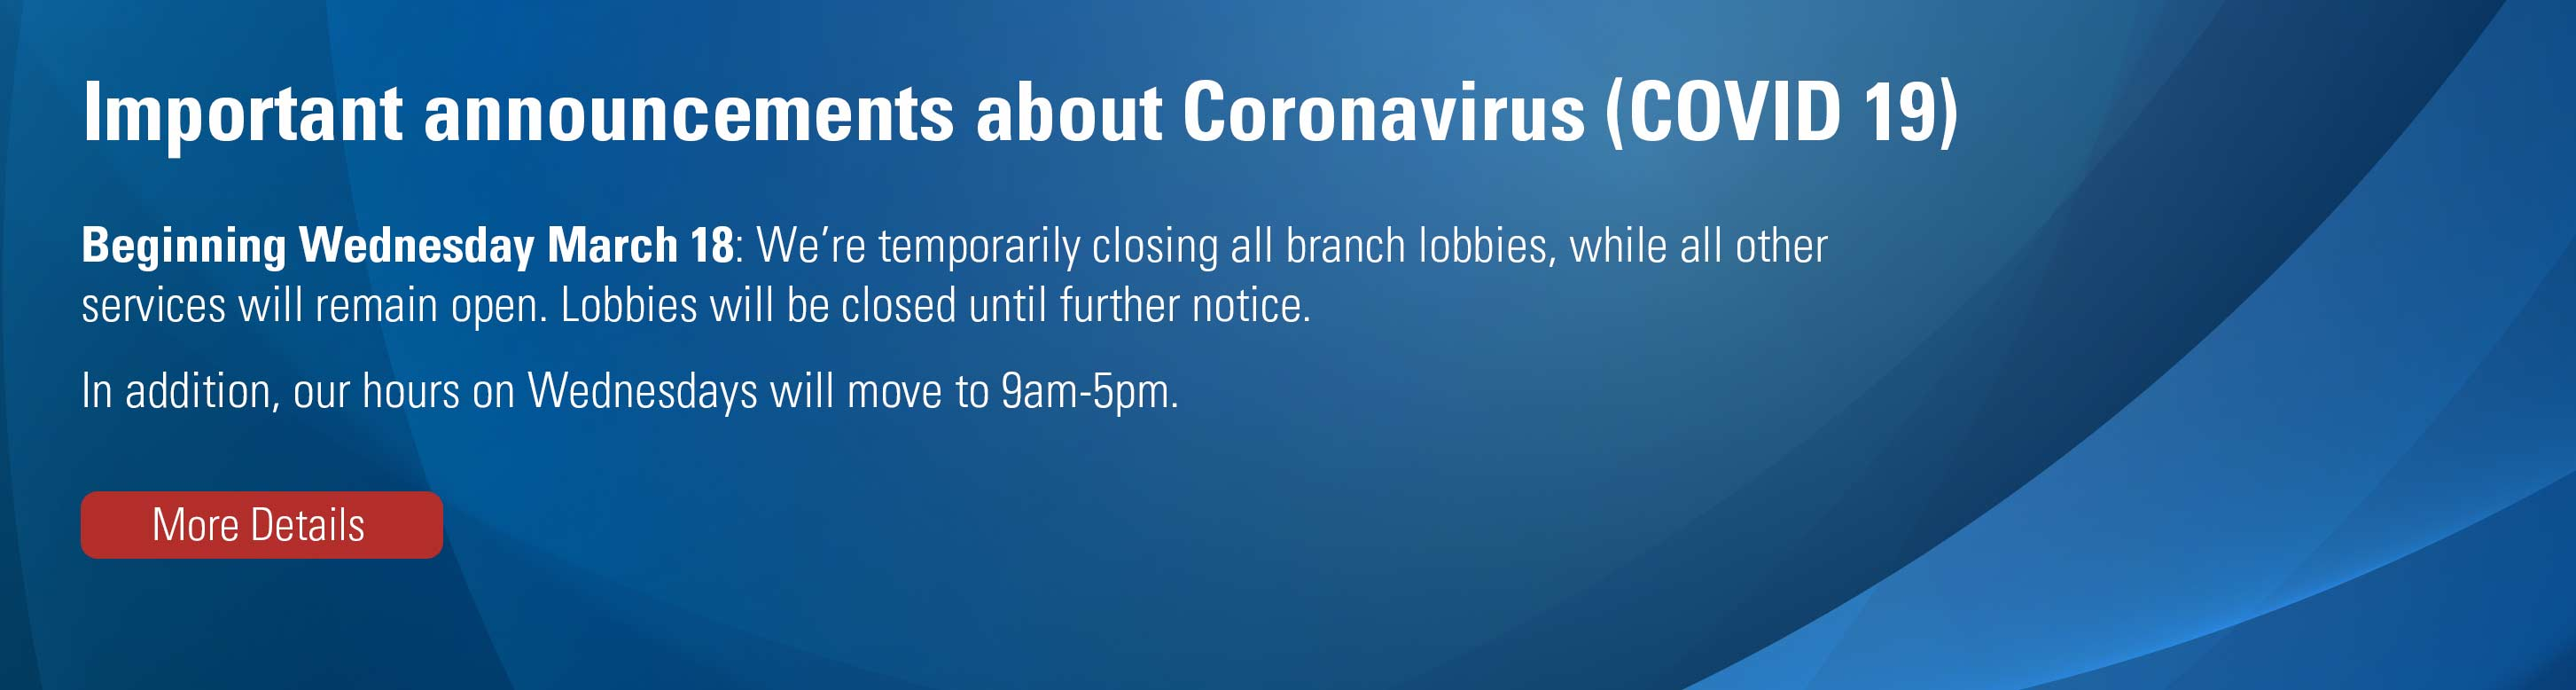 Important announcements about Coronavirus. All branch lobbies closed until further notice, other services will remain open. Hours Wednesdays changed 9am-5pm. More Details.